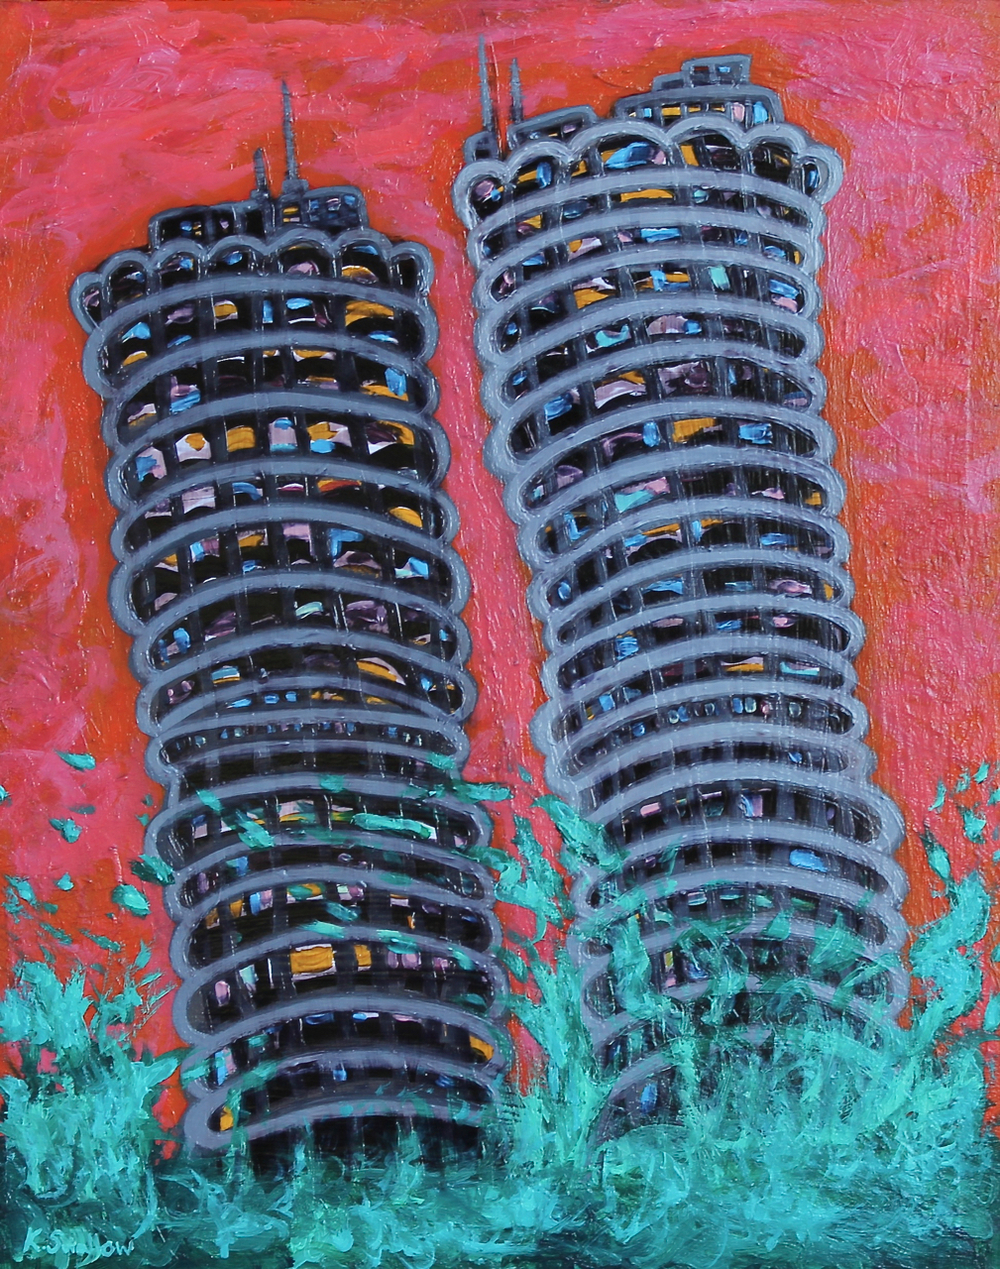 Marina City Splash, acrylic on panel, 30x24, 2013, SOLD